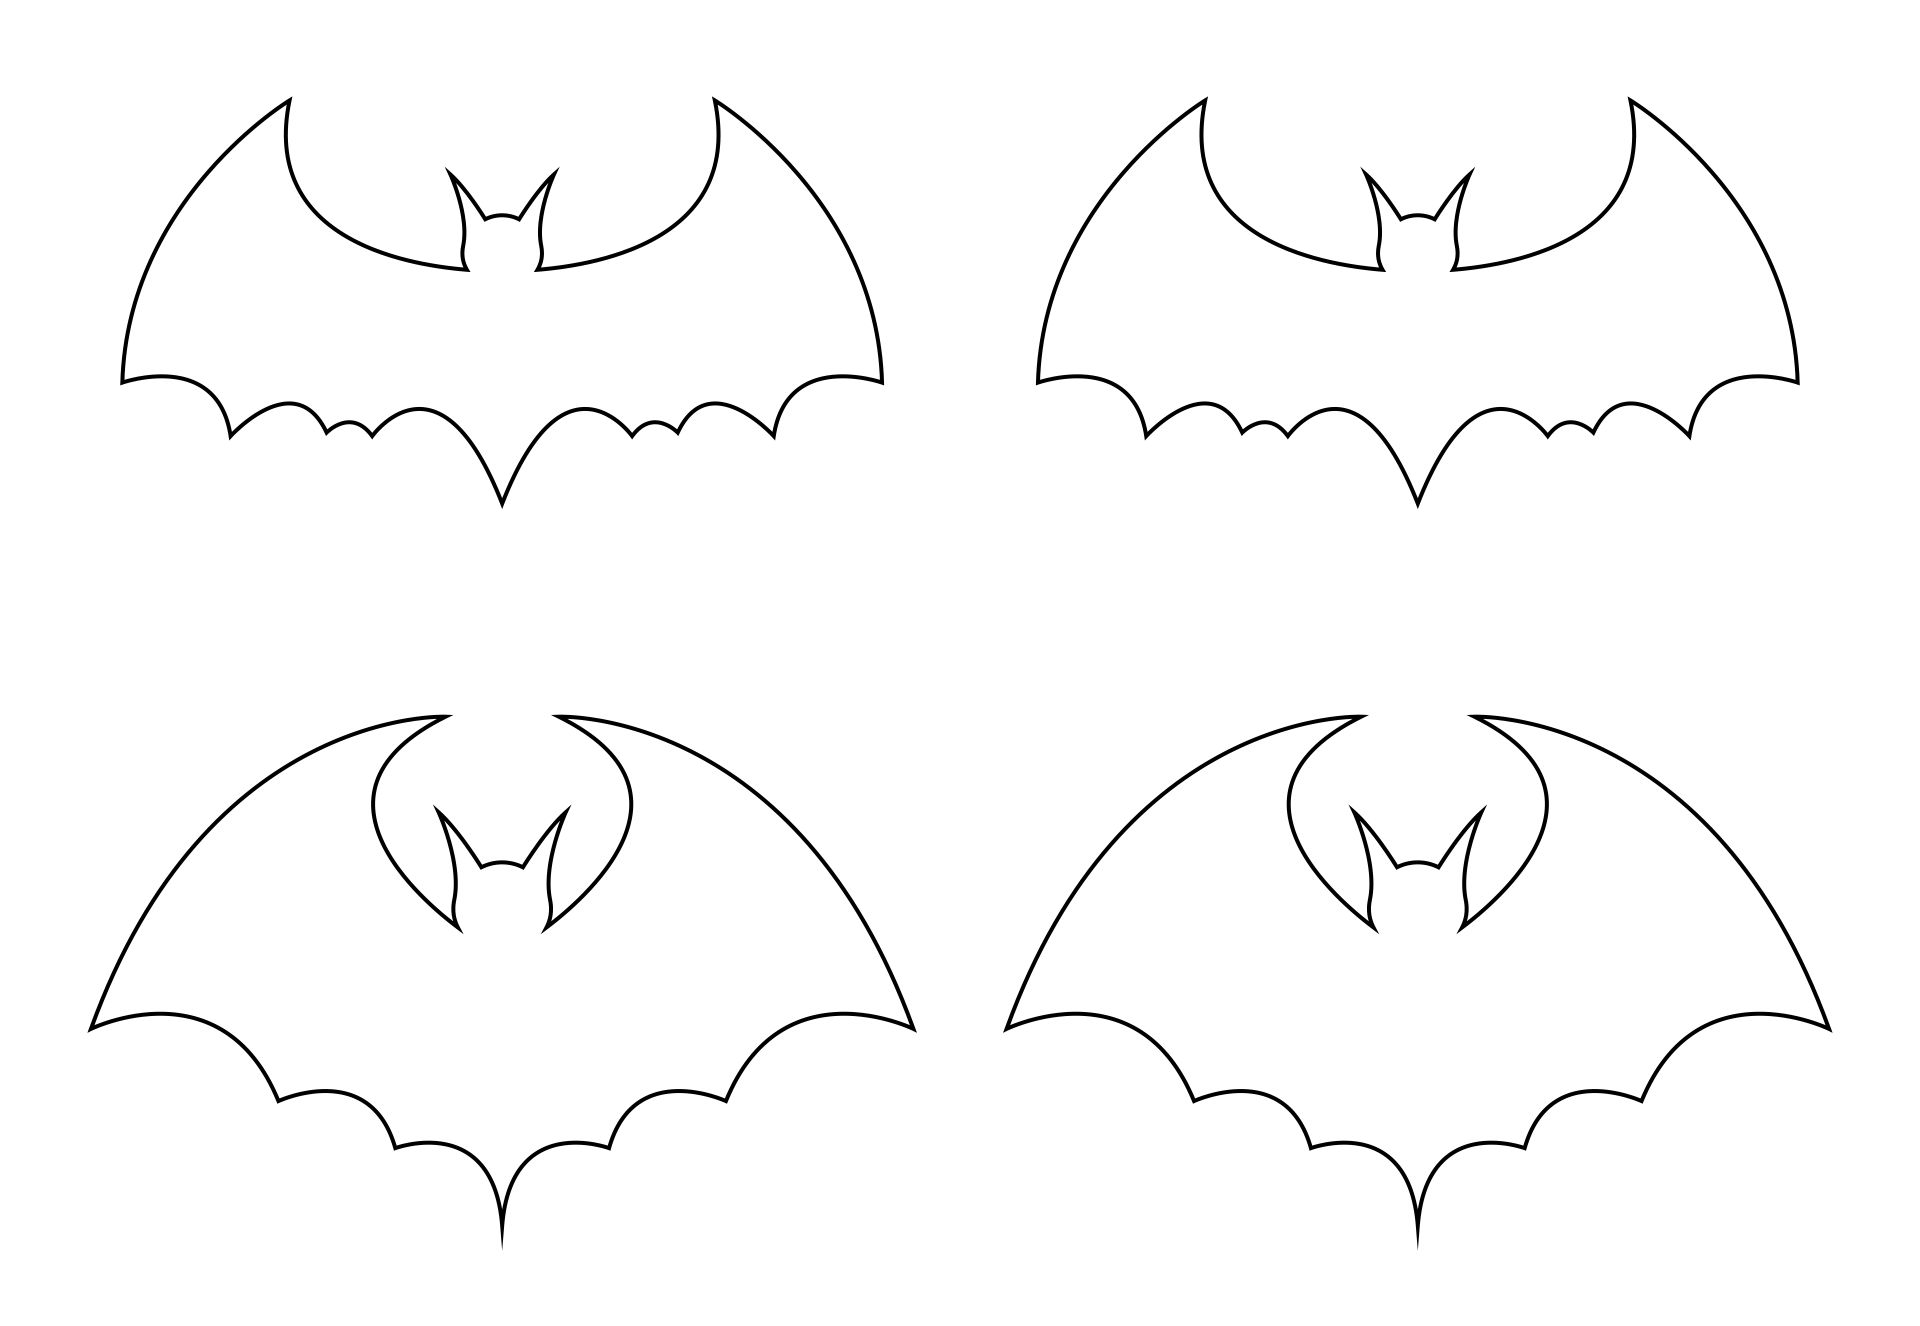 8 Images of Bats For Bat Stencils Printable